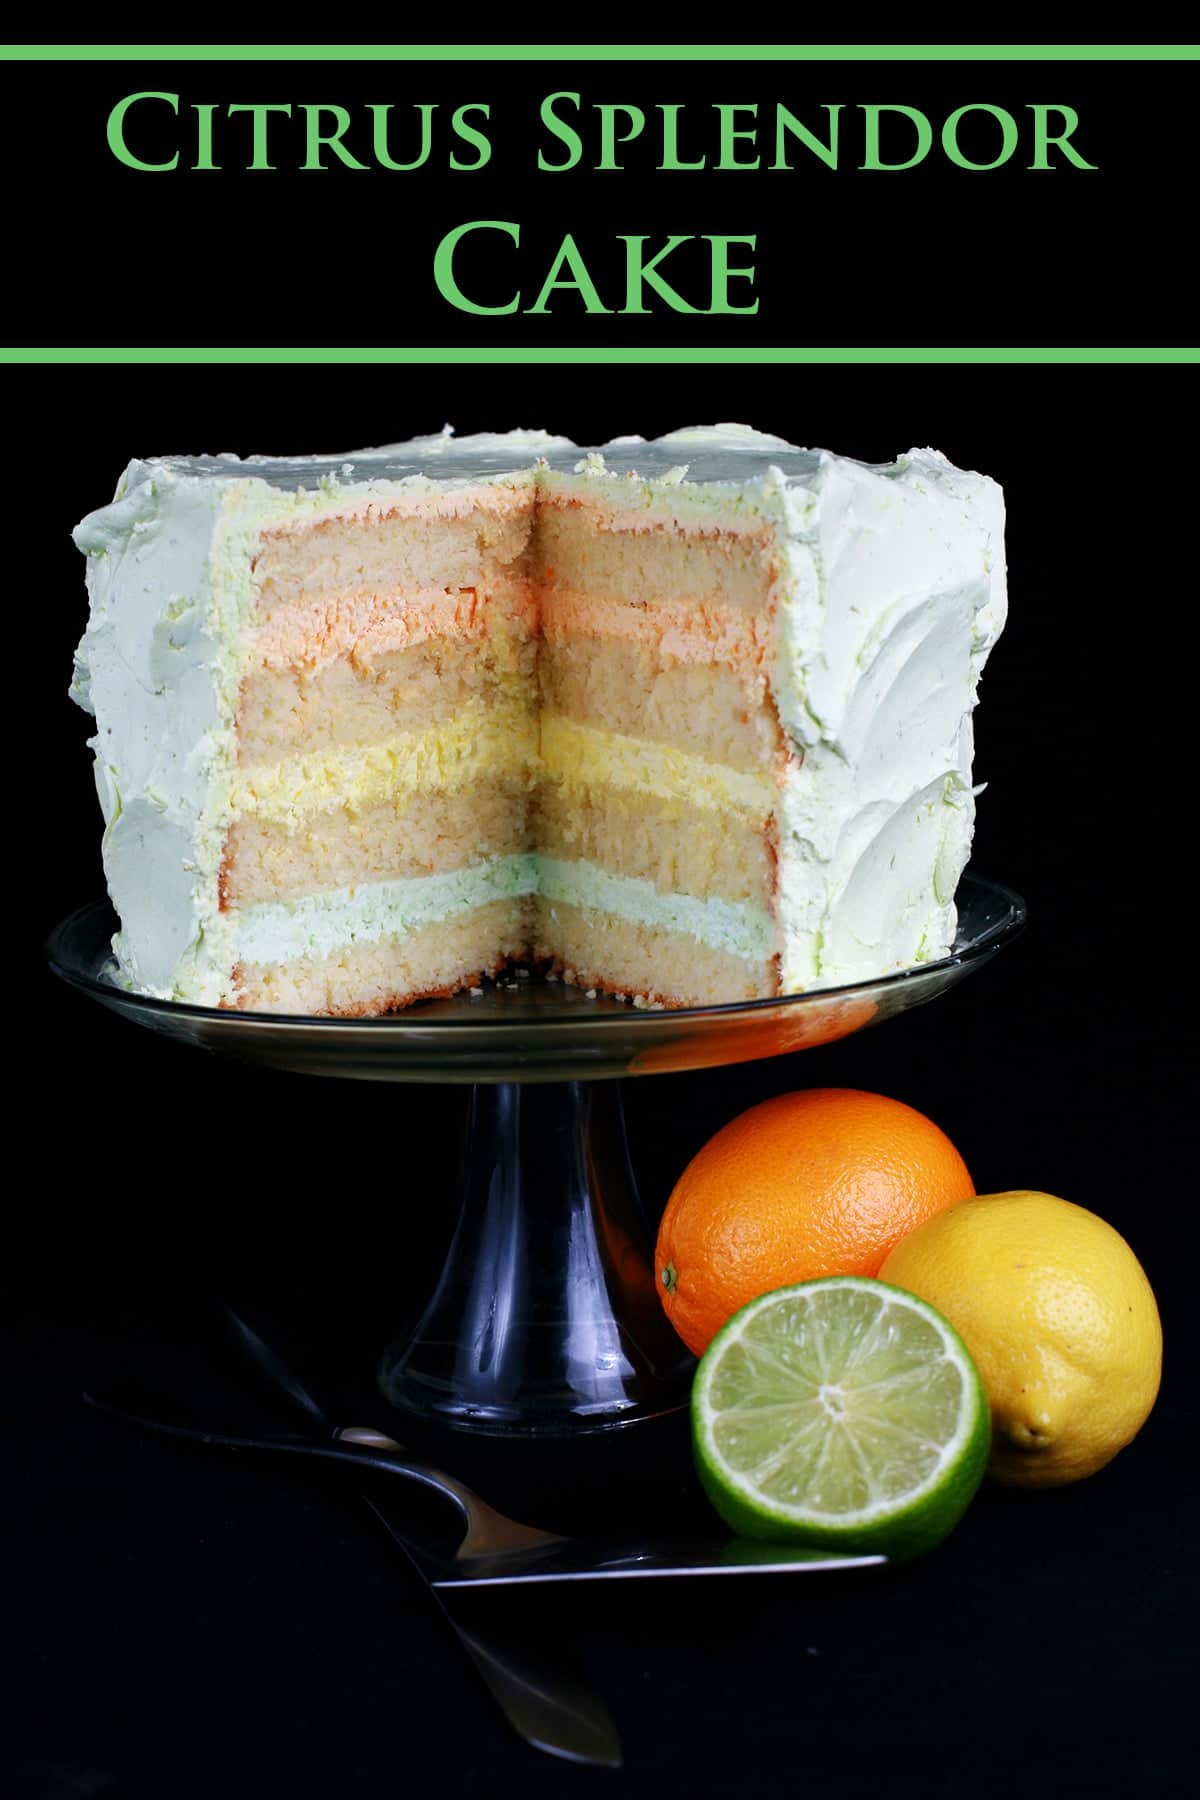 A sliced into citrus splendor cake is shown on a raised plate, with an orange, lemon, and half a lime sitting at the base of the cake stand.